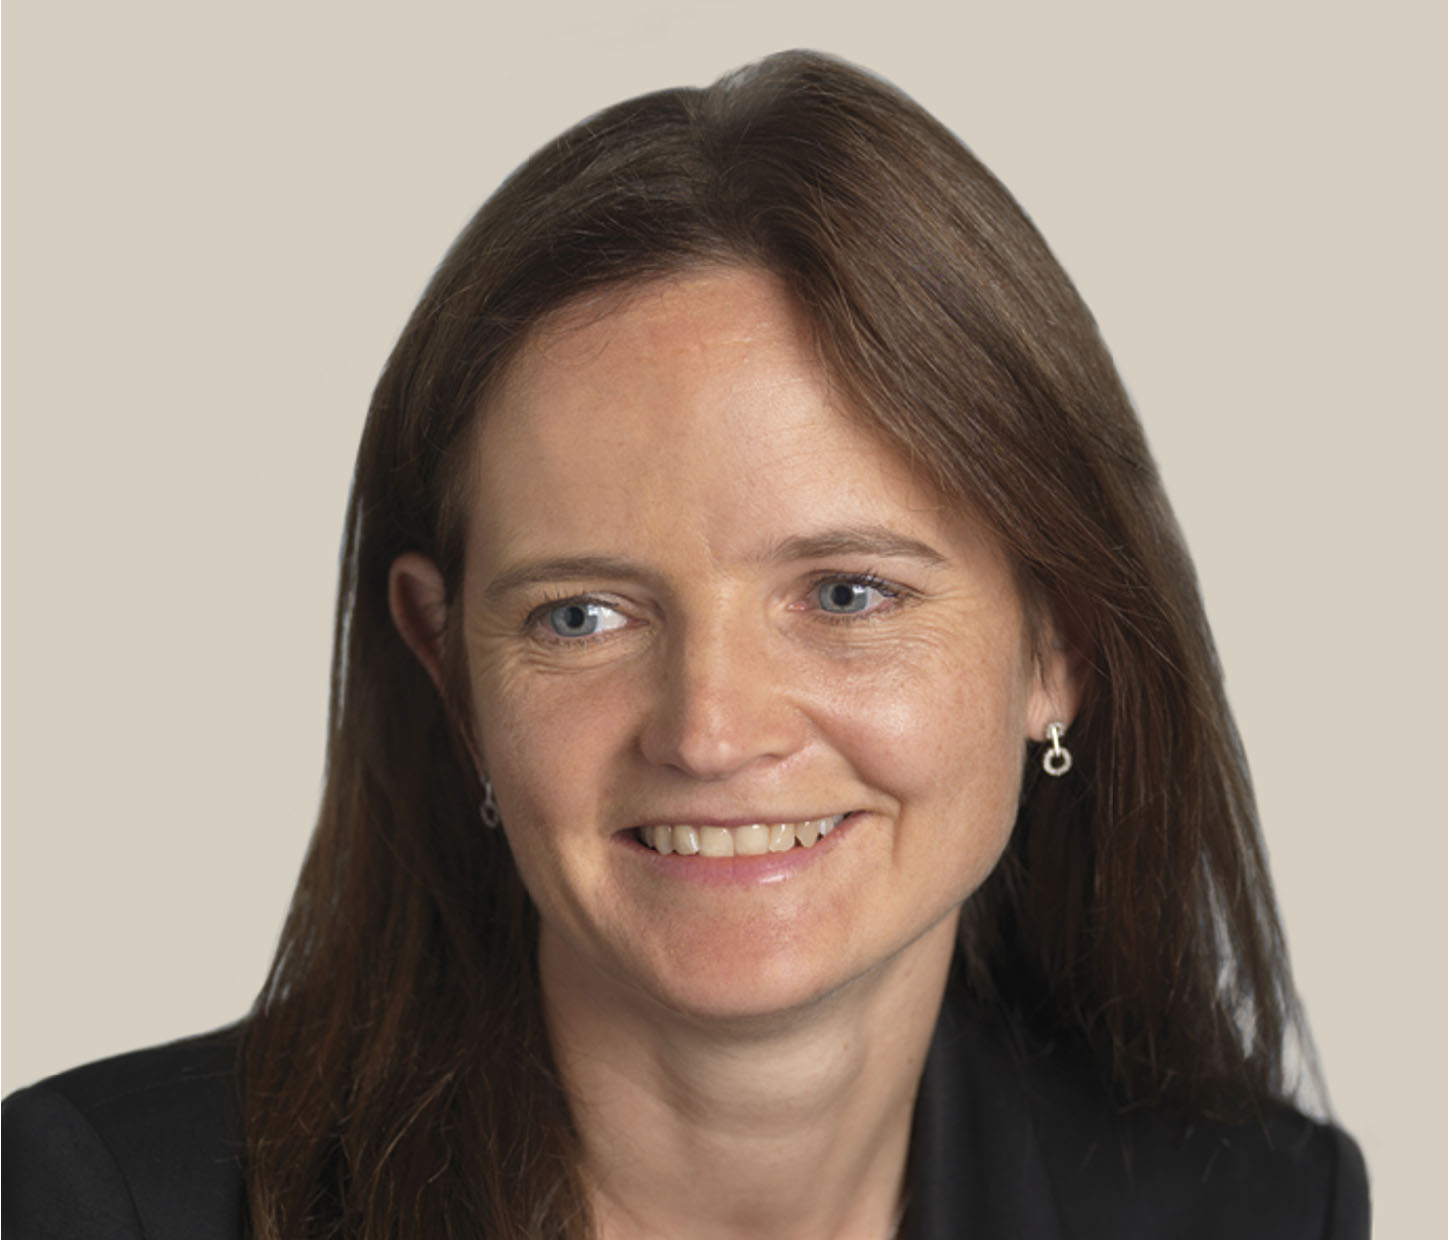 Bank of England governor Charlotte Hogg